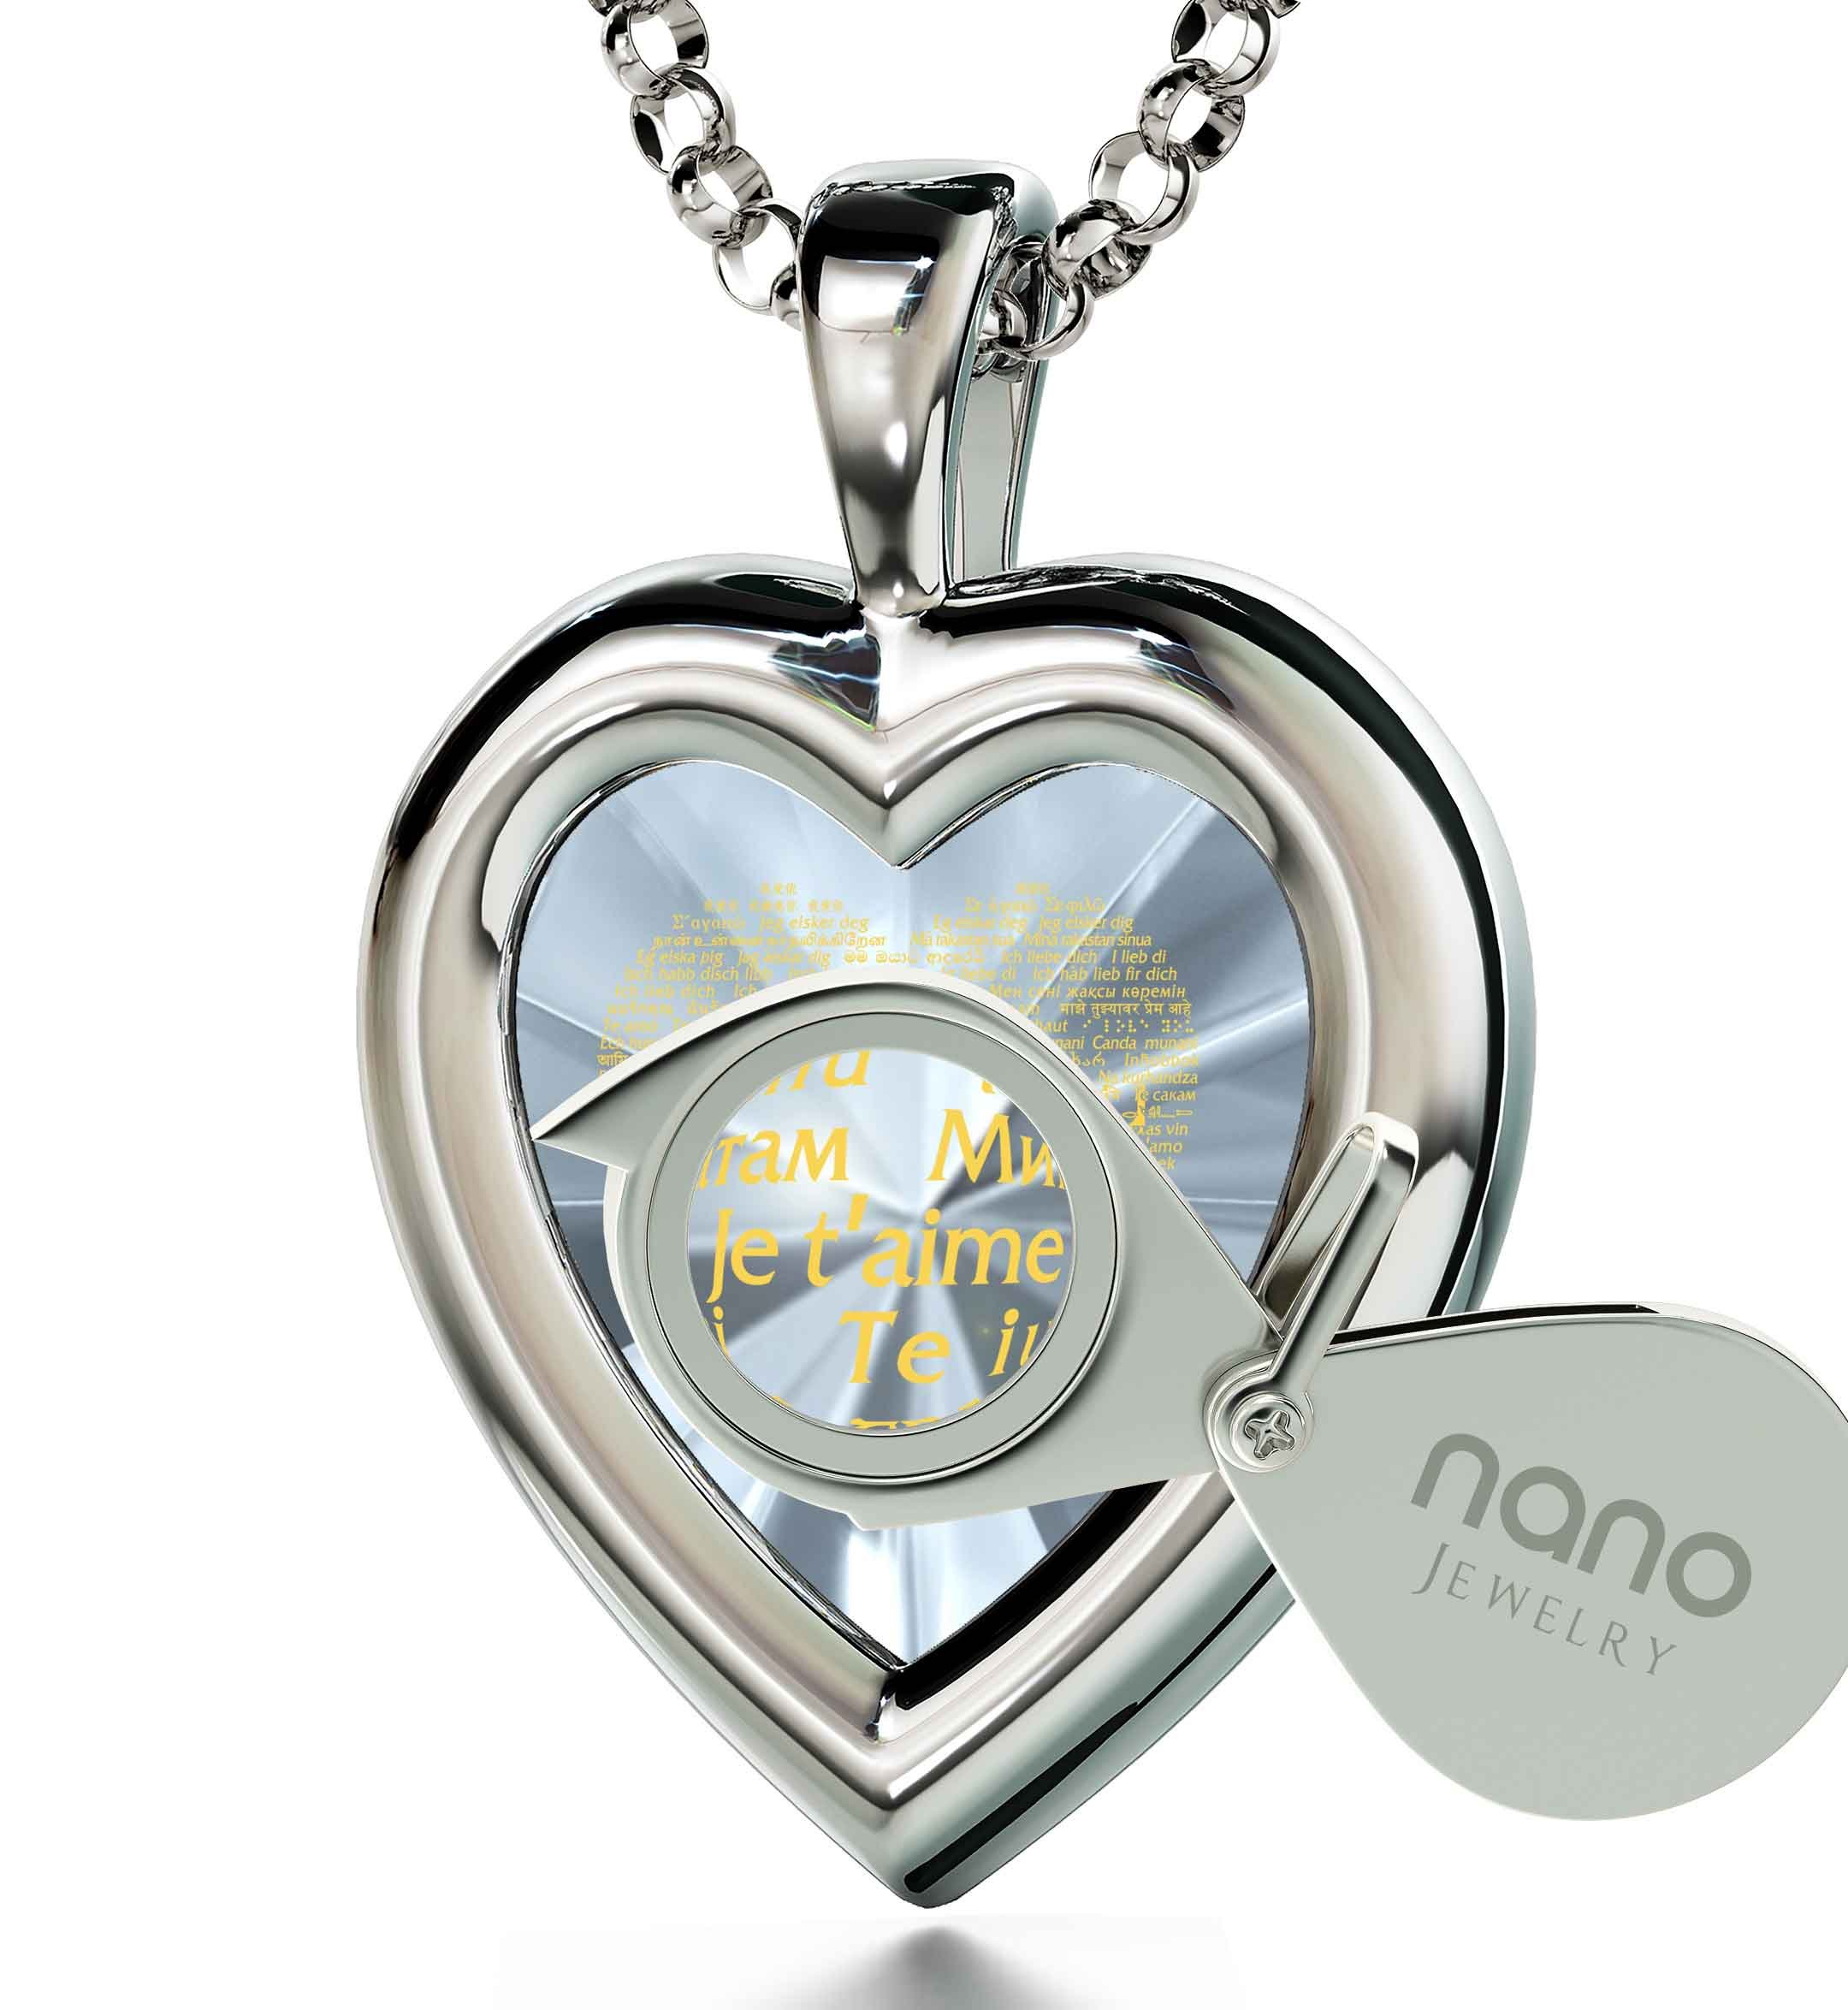 925 Sterling Silver Heart Pendant I Love You Necklace 120 Languages 24k Gold Inscribed Clear CZ, 18''